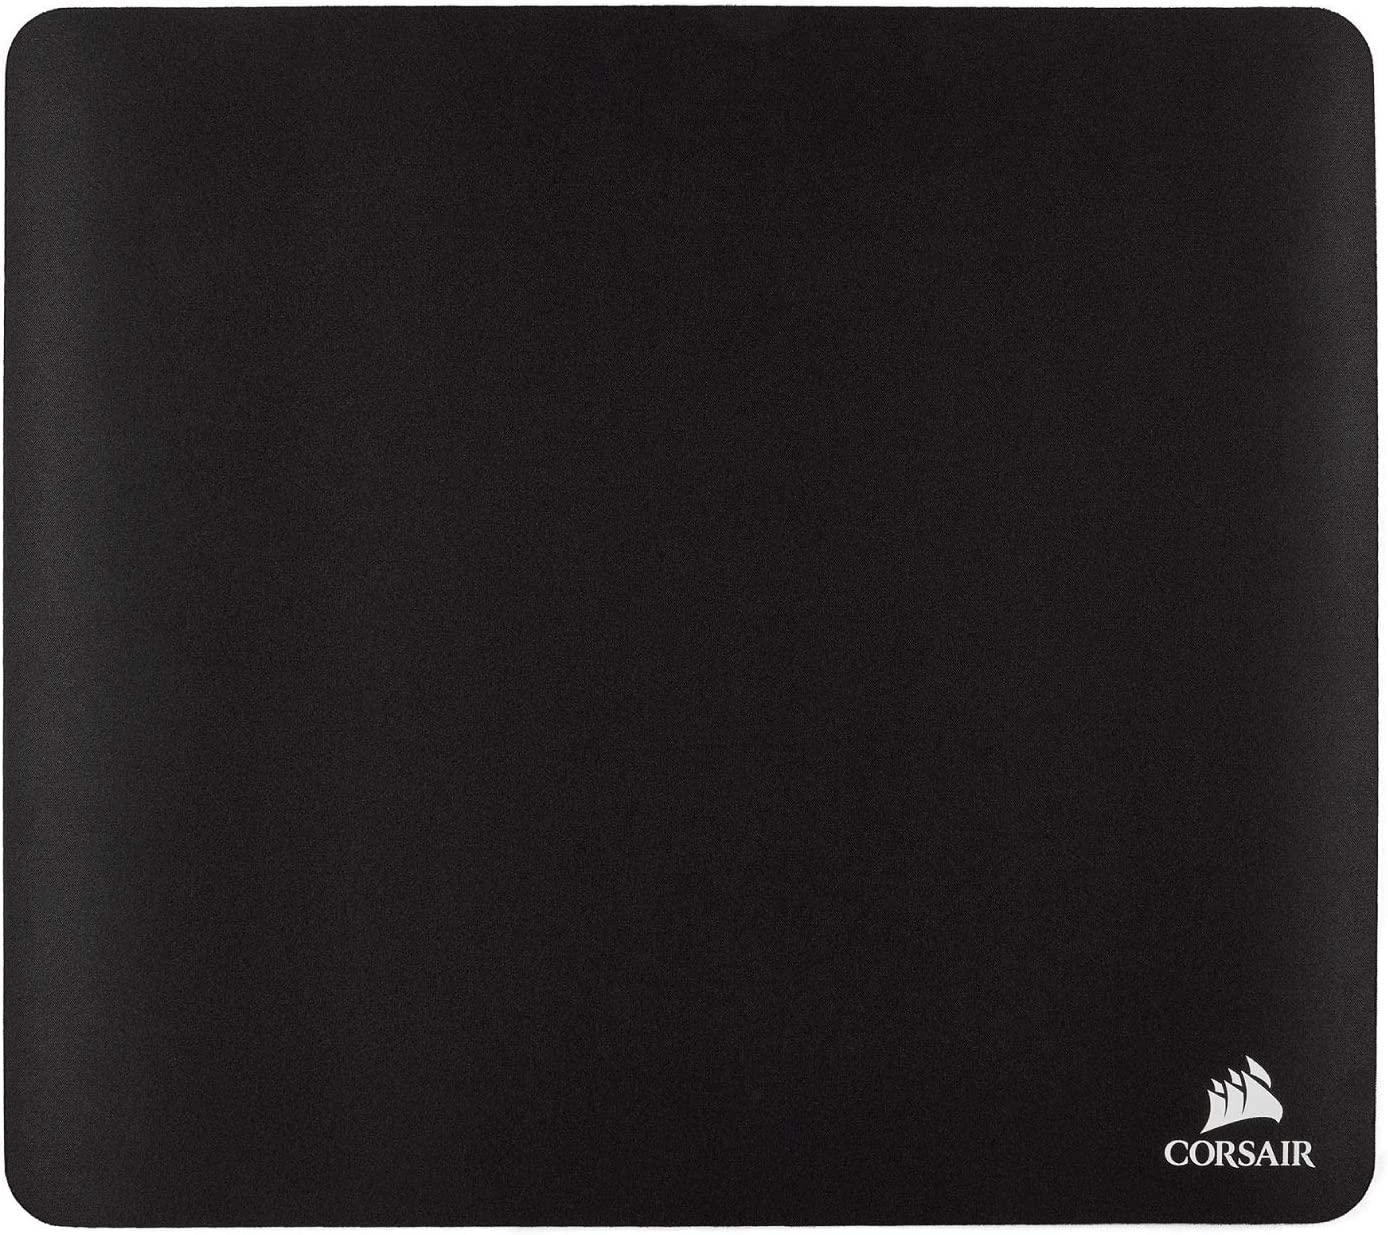 mouse pad CORSAIR MM250 x large negro